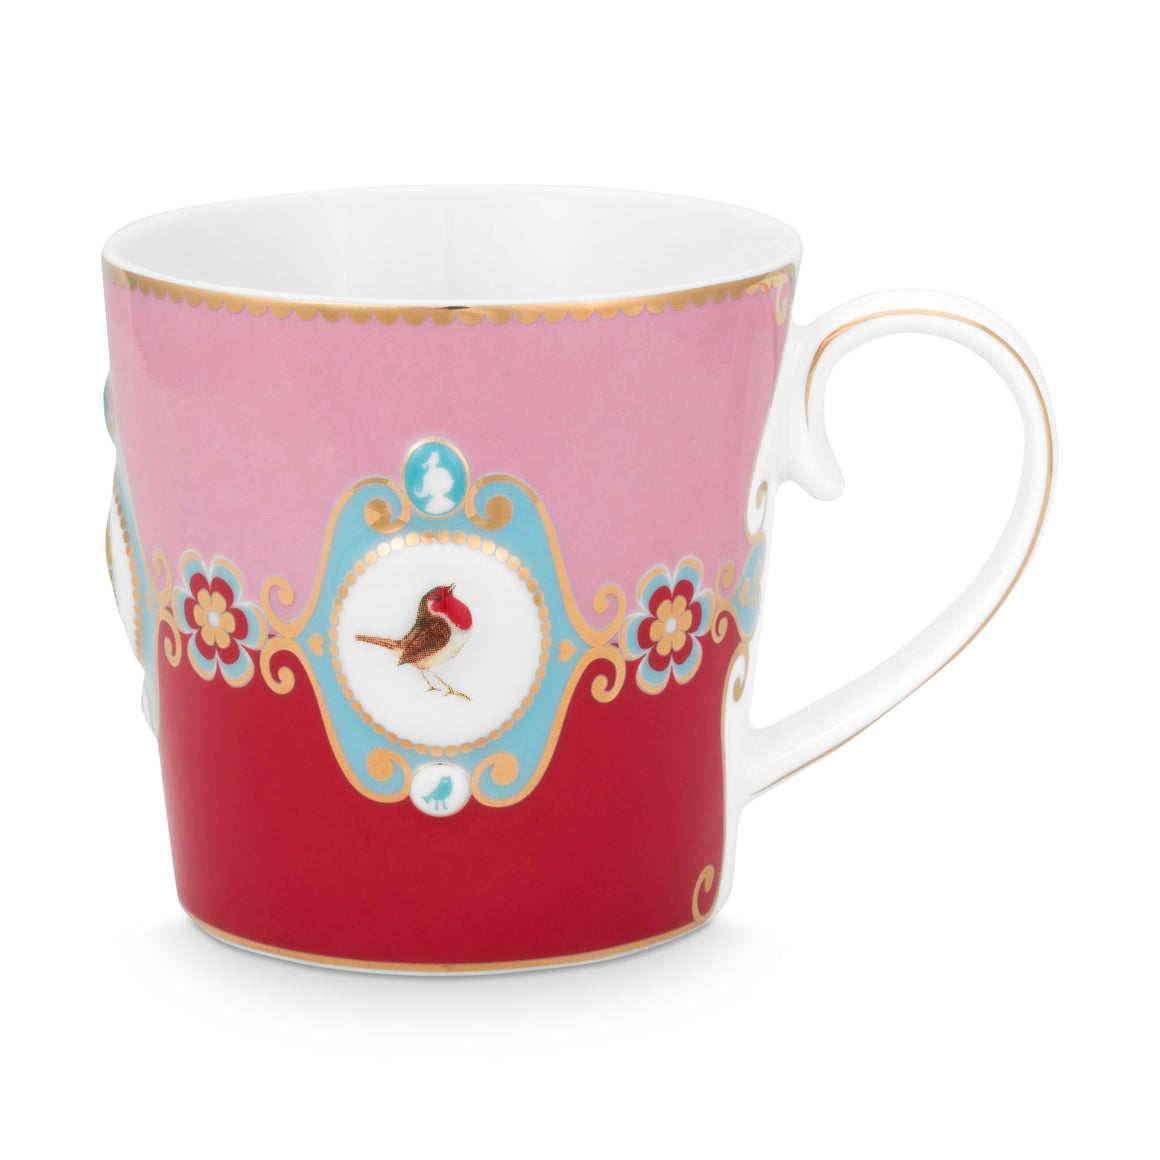 Love Bird Mug, Red / Pink